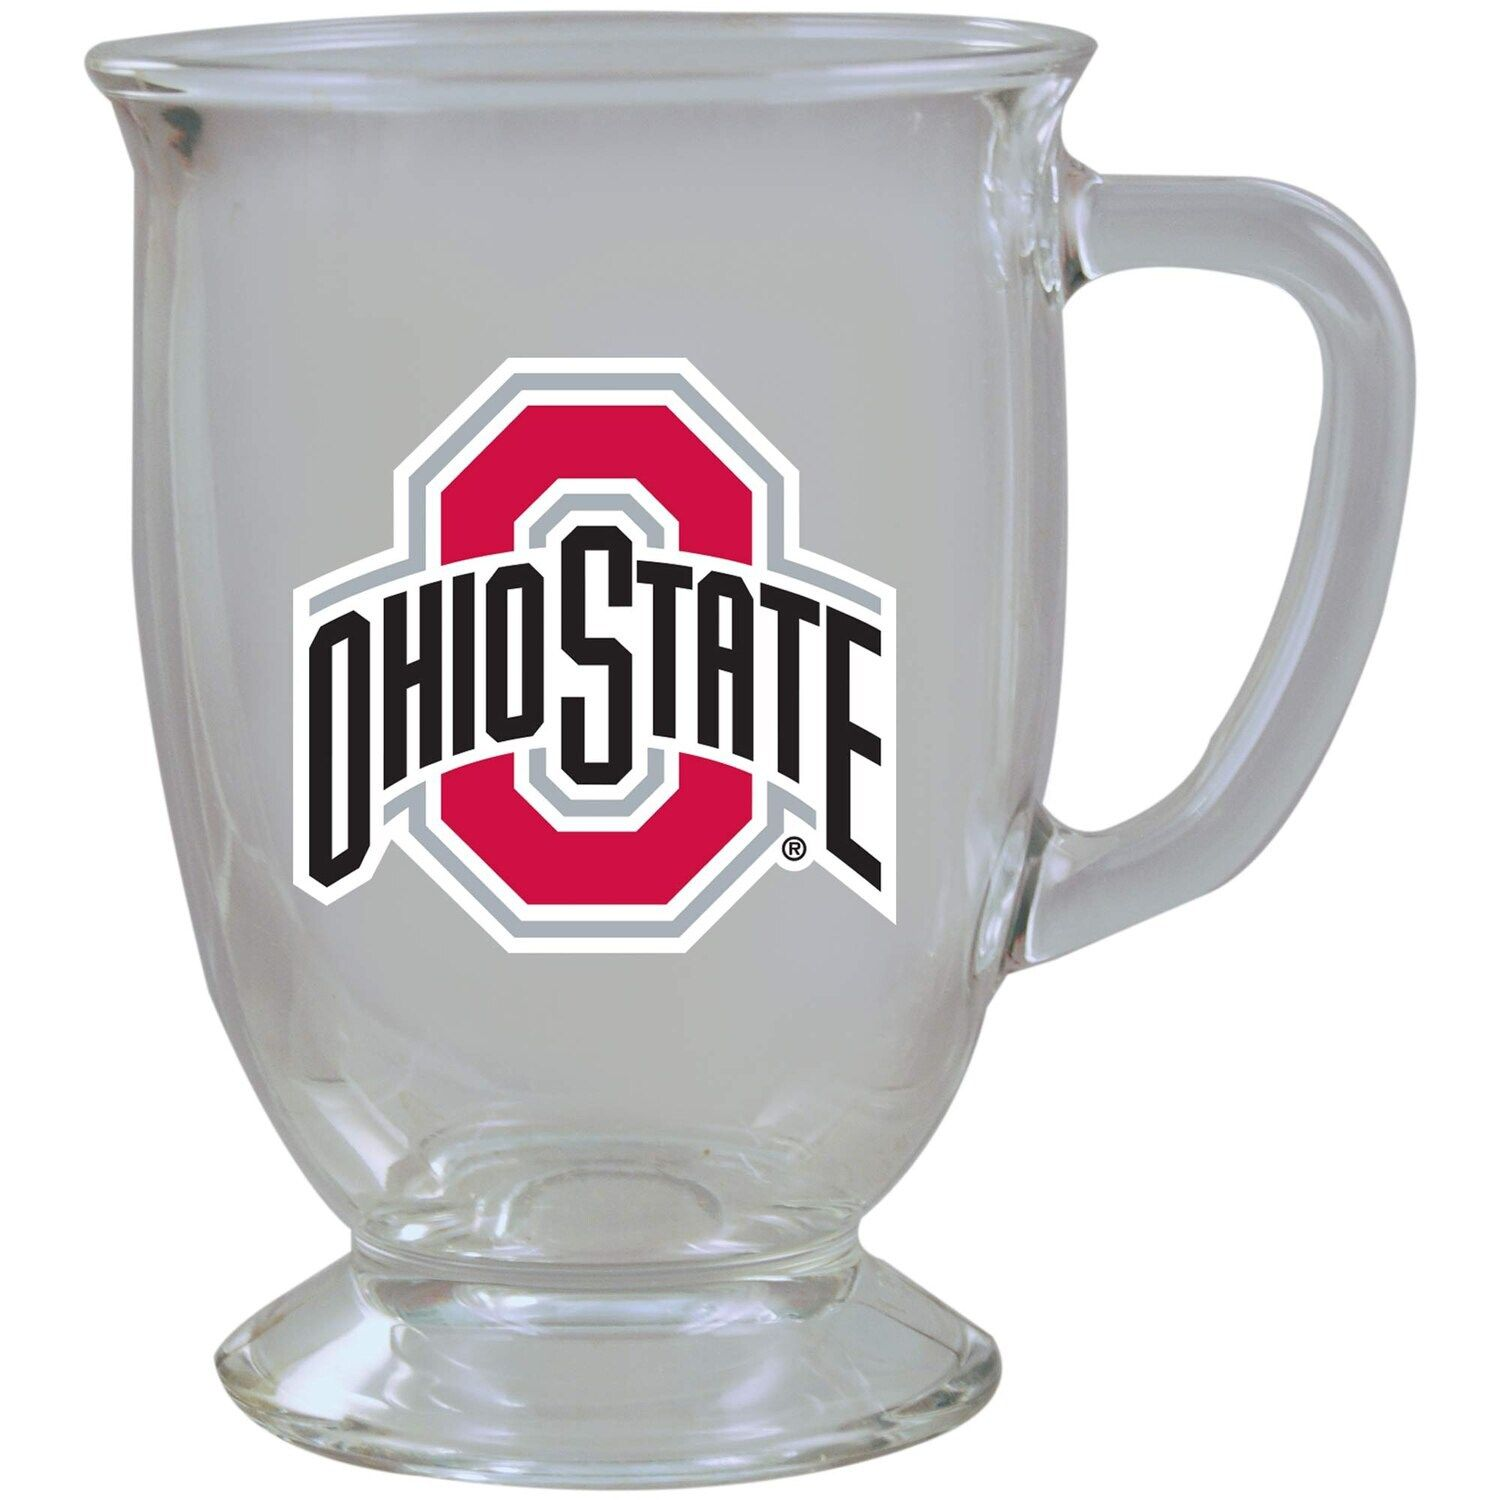 Ohio State Buckeyes 16oz. Kona Glass Mug